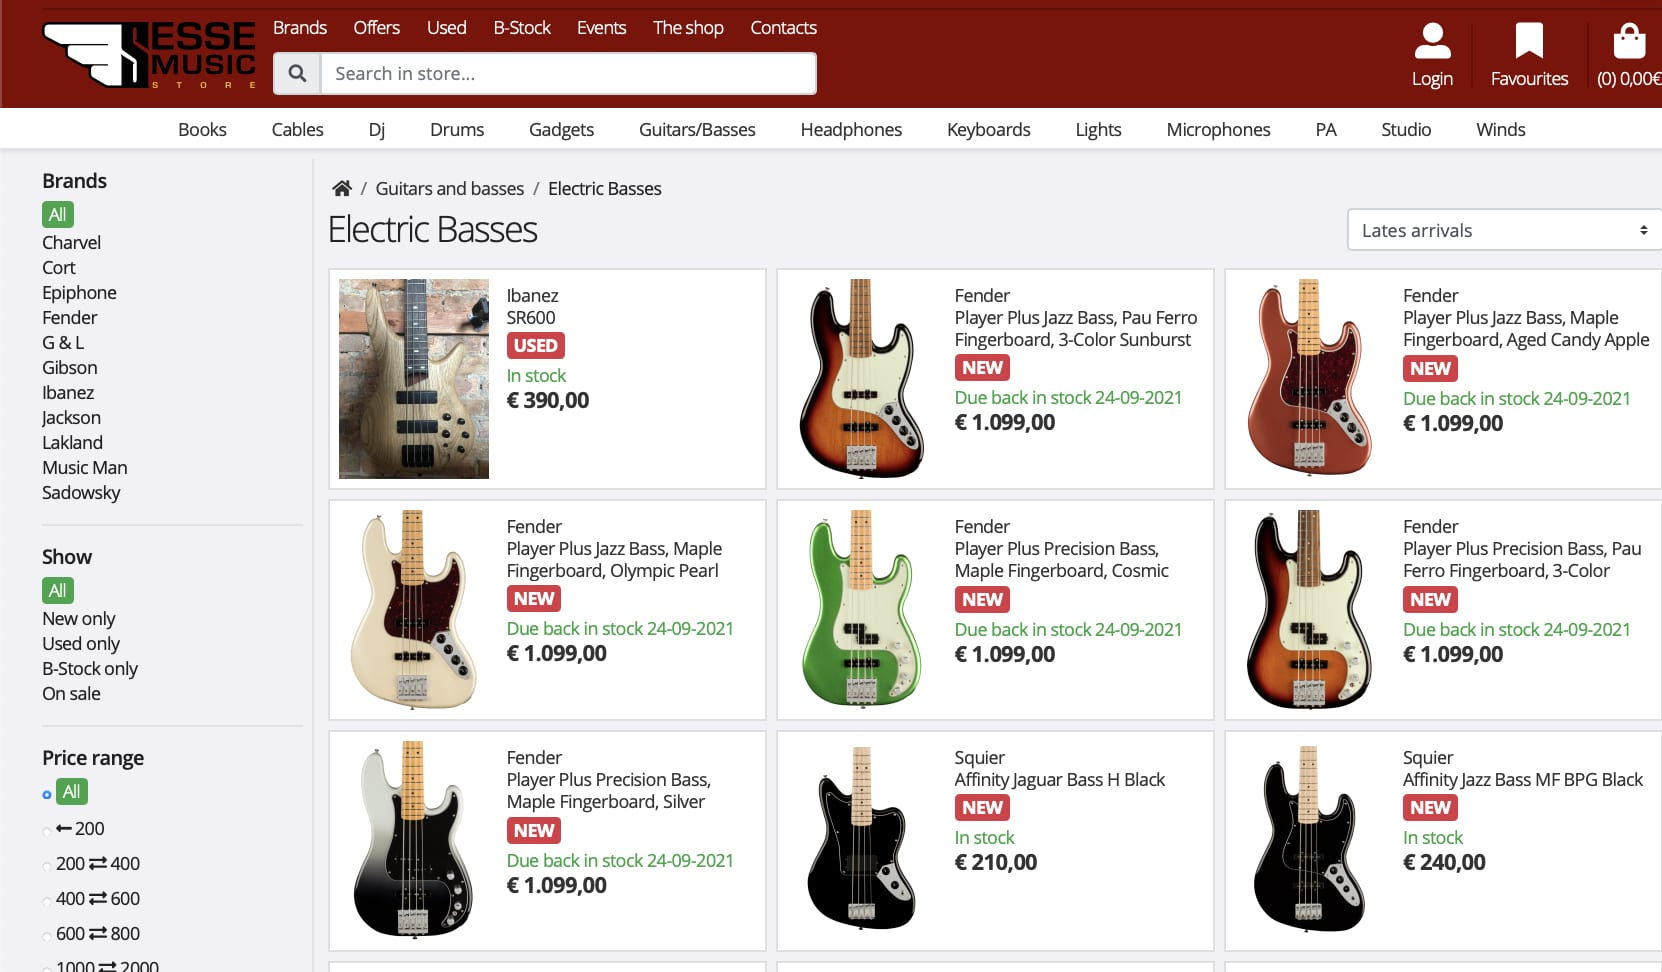 Leak- Fender Player Plus Series new basses spotted as well